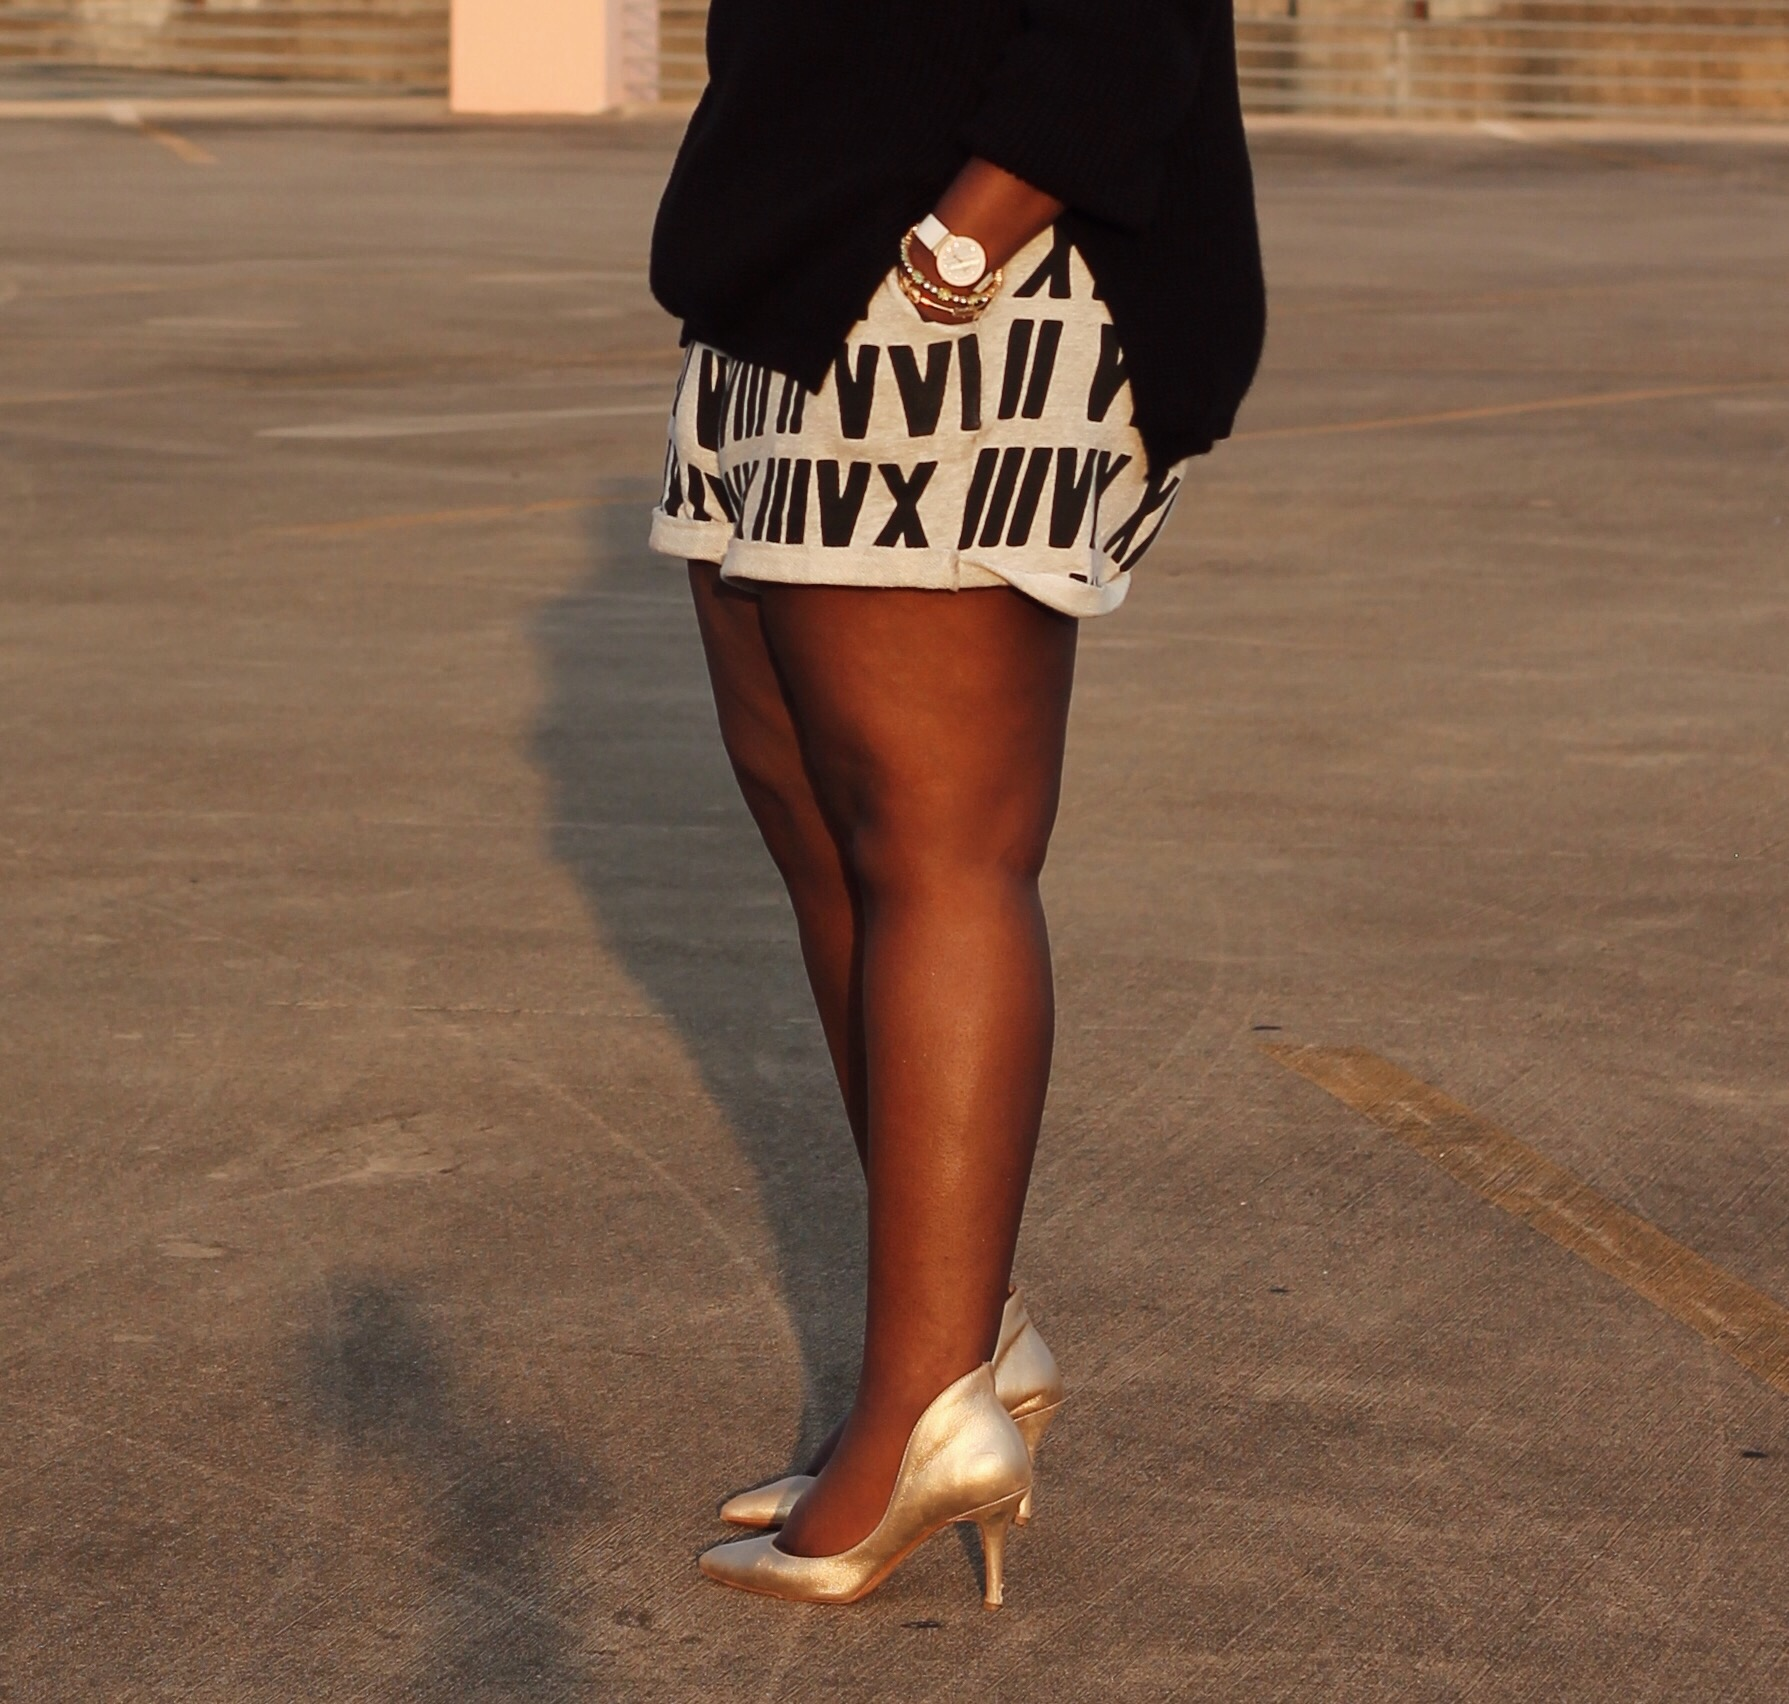 plus size black bloggers, clothes for curvy girls, curvy girl fashion clothing, plus blog, plus size fashion tips, plus size women blog, at fashion blog, plus size high fashion, curvy women fashion, plus blog, curvy girl fashion blog, style plus curves, plus size fashion instagram, curvy girl blog, bbw blog, plus size street fashion, plus size beauty blog, plus size fashion ideas, curvy girl summer outfits, plus size fashion magazine, plus fashion bloggers, boohoo, rebdolls bodycon maxi dresses, birthday post